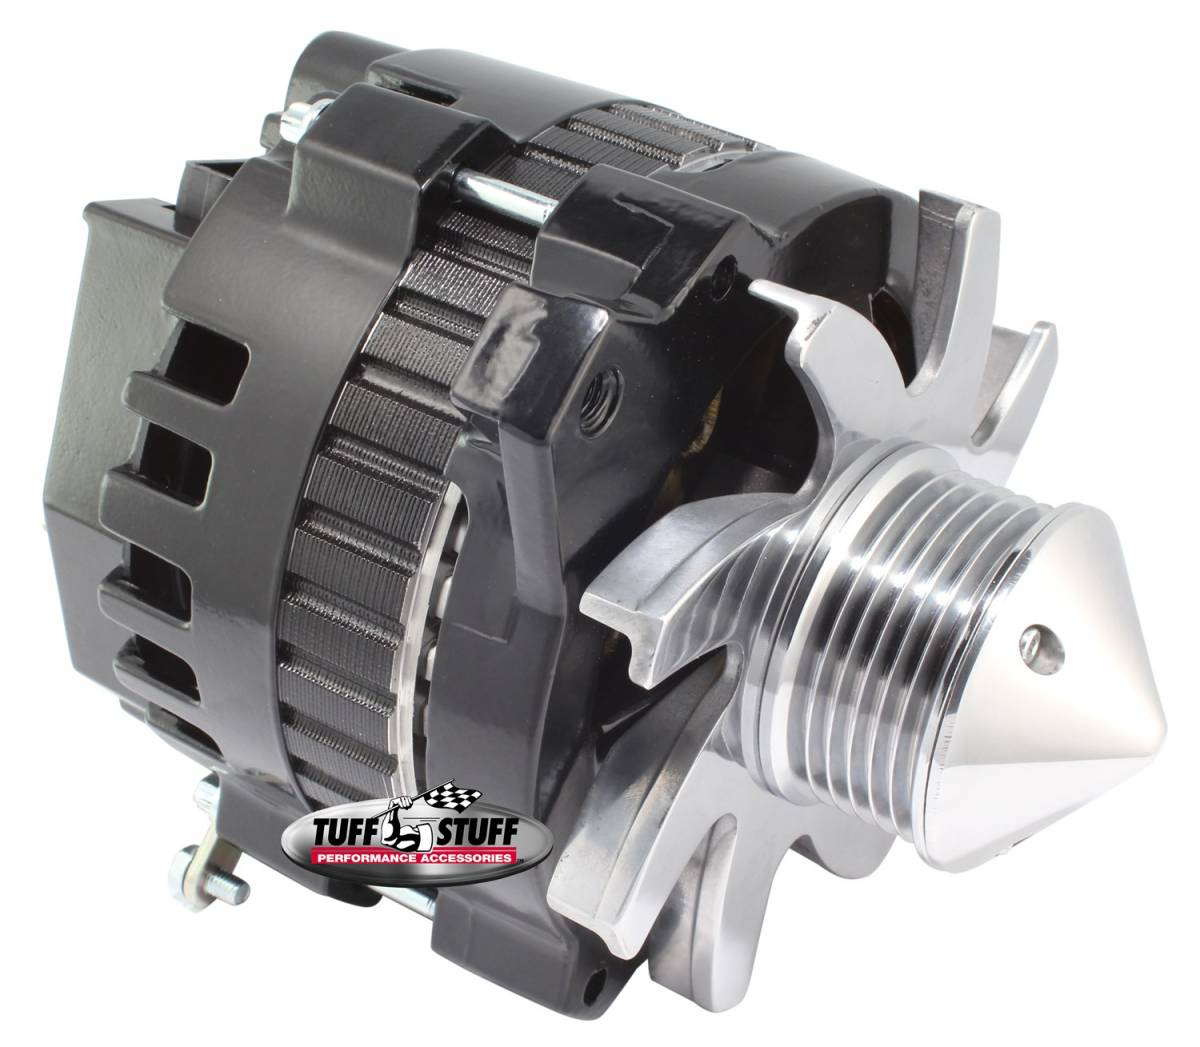 Tuff Stuff Performance - Bullet Alternator 160 AMP 1 Wire Or OEM Hookup 6 Groove Pulley 6.125 in. Bolt To Bolt Stealth Black 7866G6GS22